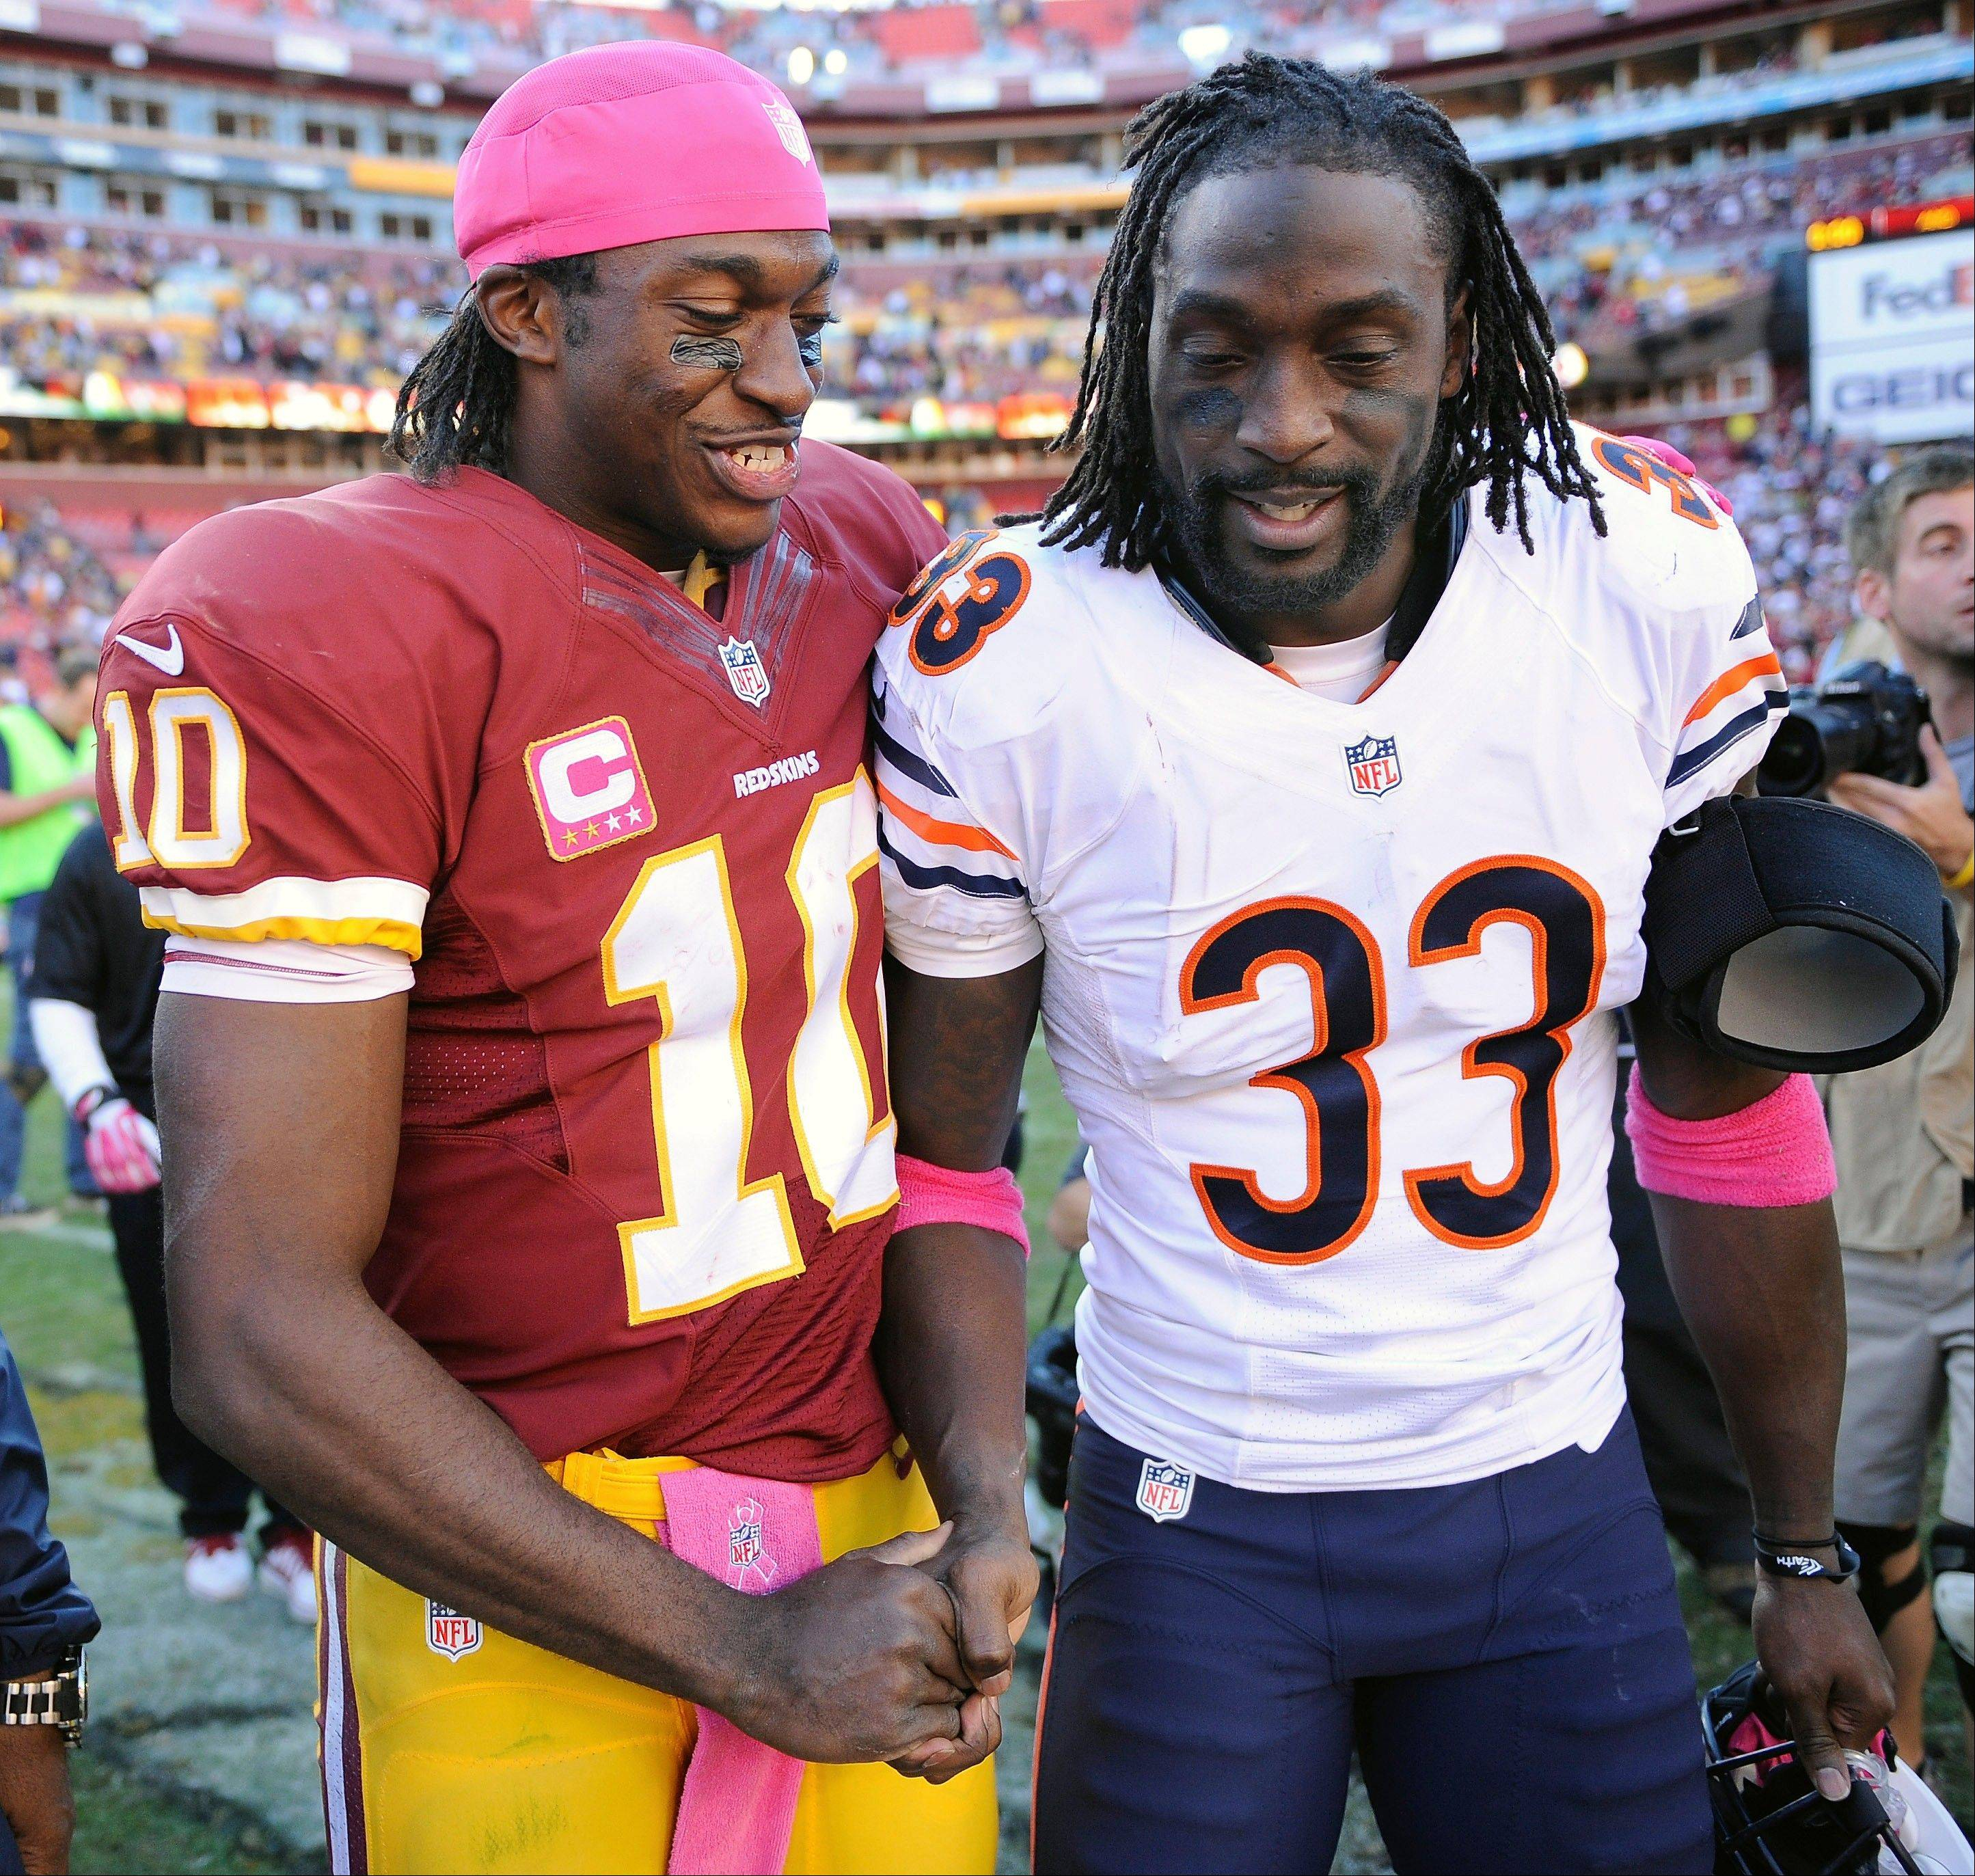 Washington quarterback Robert Griffin III, left, greets Chicago Bears cornerback Charles Tillman after Washington defeated the Bears 45-41.